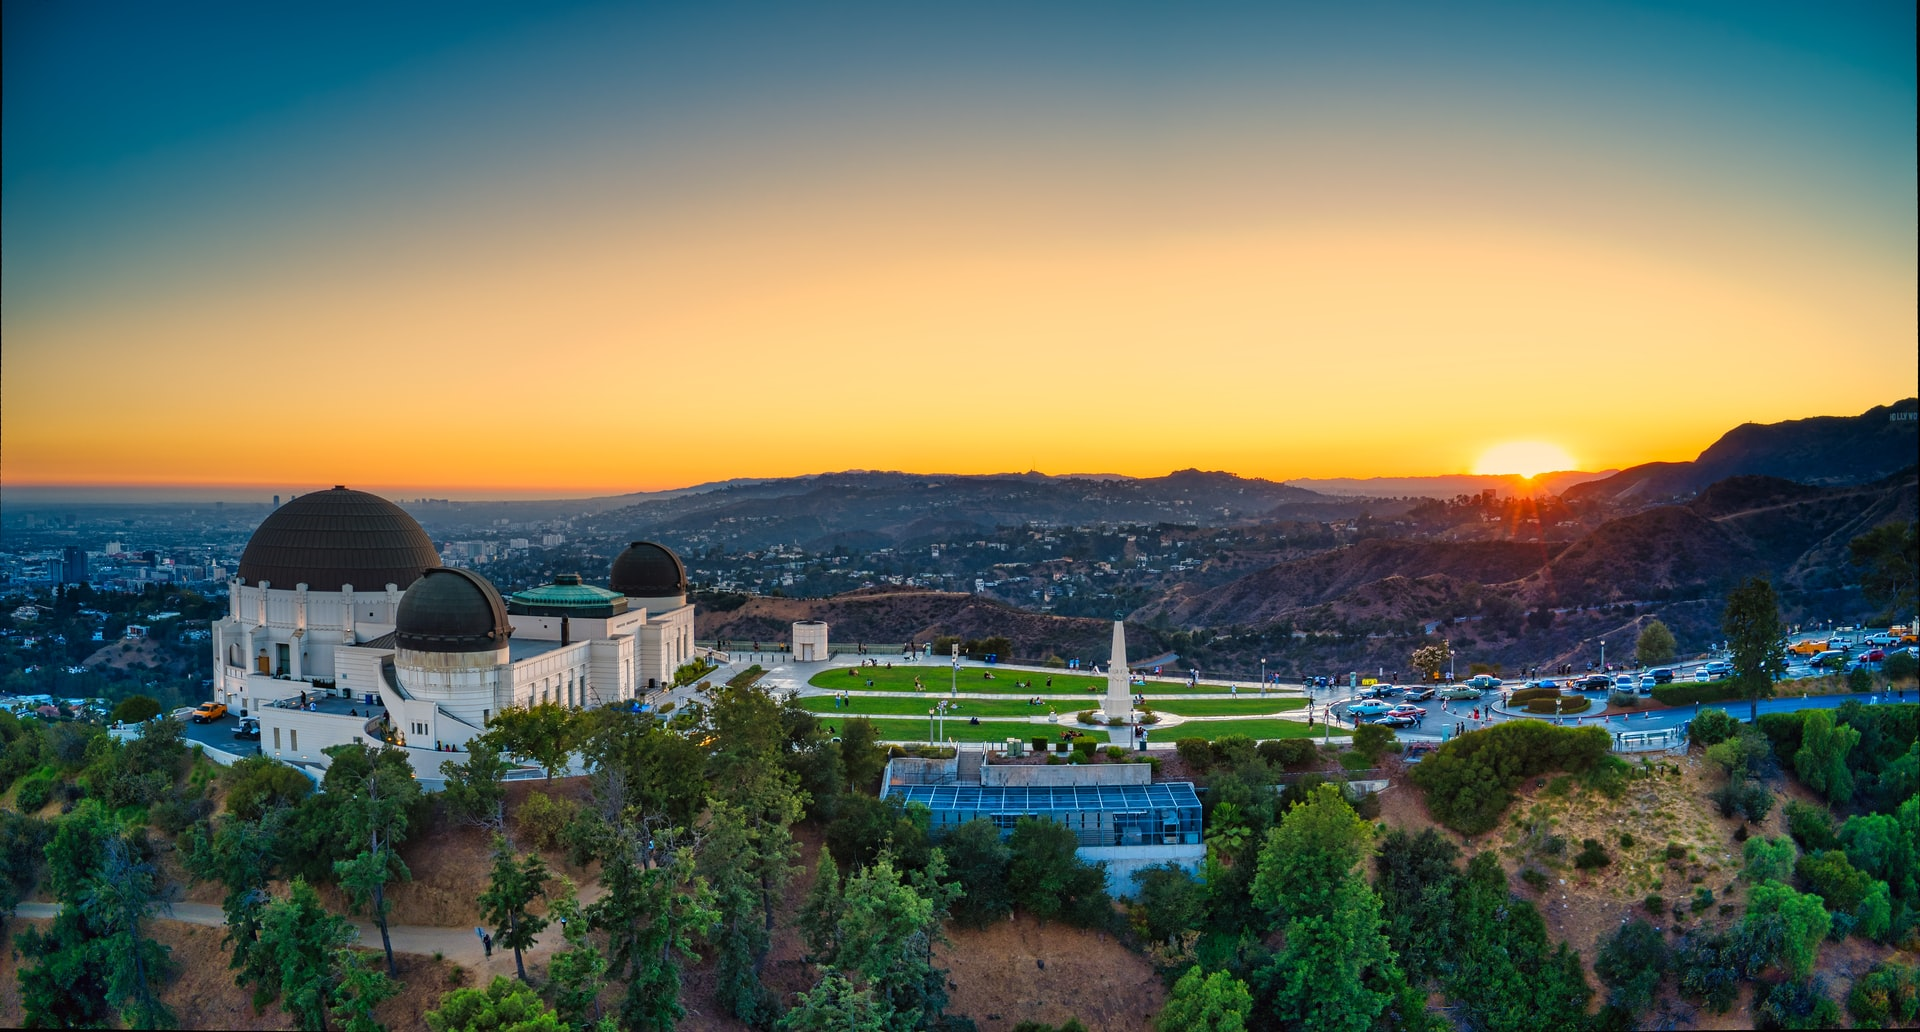 A view of the Griffith Park Observatory in Los Angeles, California, where the city has long had an urban tree planting program. Photo credit: Cameron Venti/Unsplash